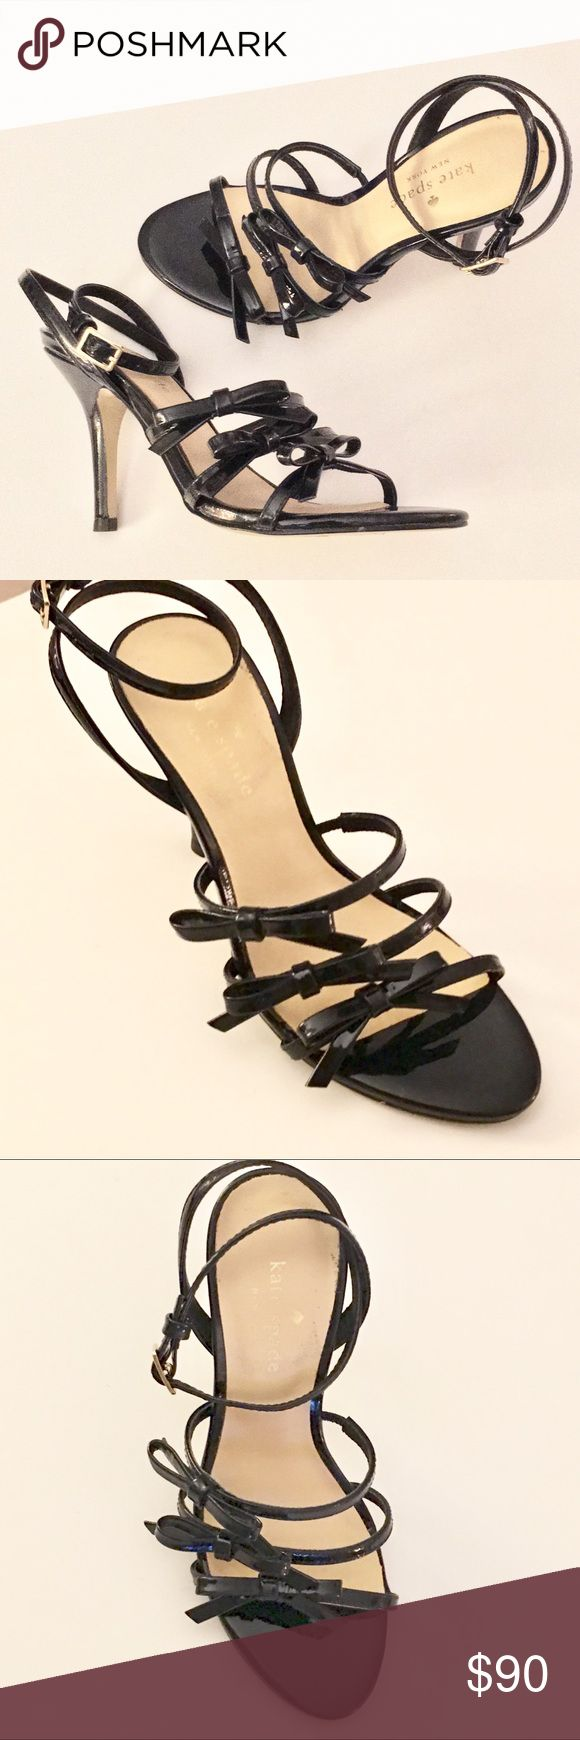 NWT Kate Spade Strappy Dress Sandals w/ Bows NWT. Never worn. Kate Spade Dress Sandals in Dark Navy Patent leather  Threes straps in front with bow on each strap Wrap ankle strap Heel approx. 3 3/4 inches Size 5 1/2M kate spade Shoes Heels